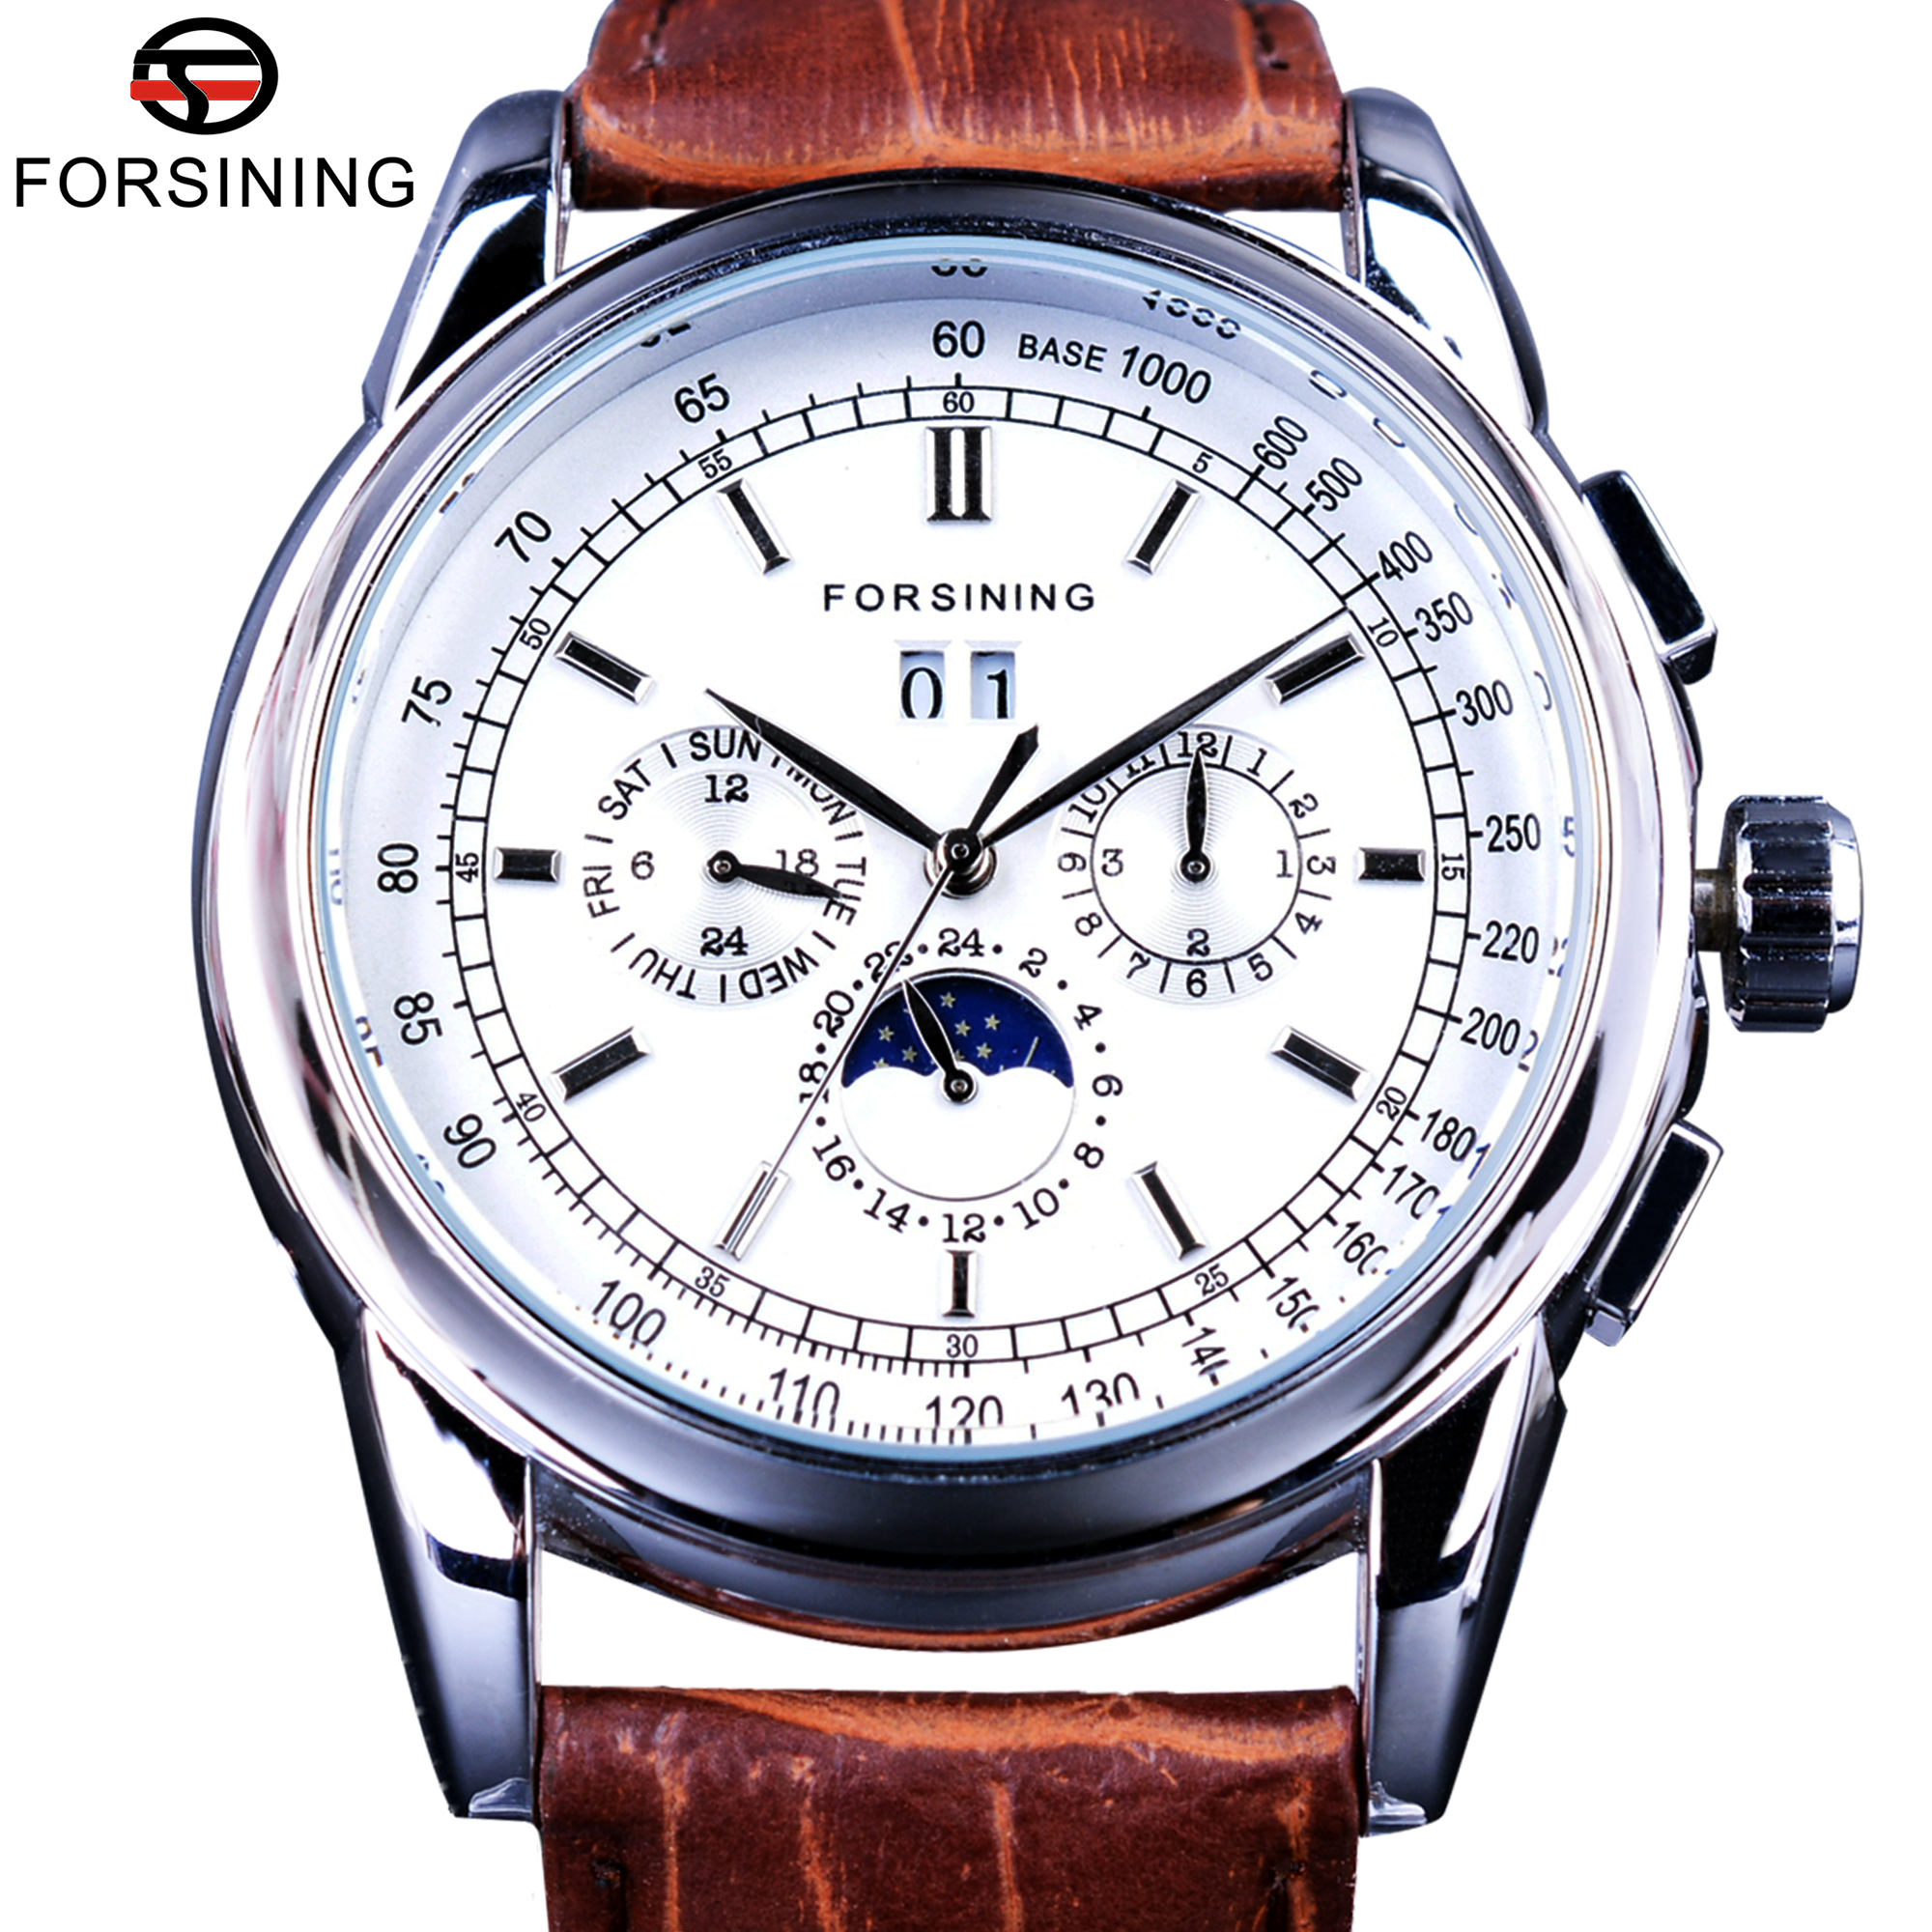 Forsining Moonphase Calendar Display Brown Leather ShangHai Automatic Movement Mens Watches Top Brand Luxury Mechanical Watches forsining 3d skeleton twisting design golden movement inside transparent case mens watches top brand luxury automatic watches